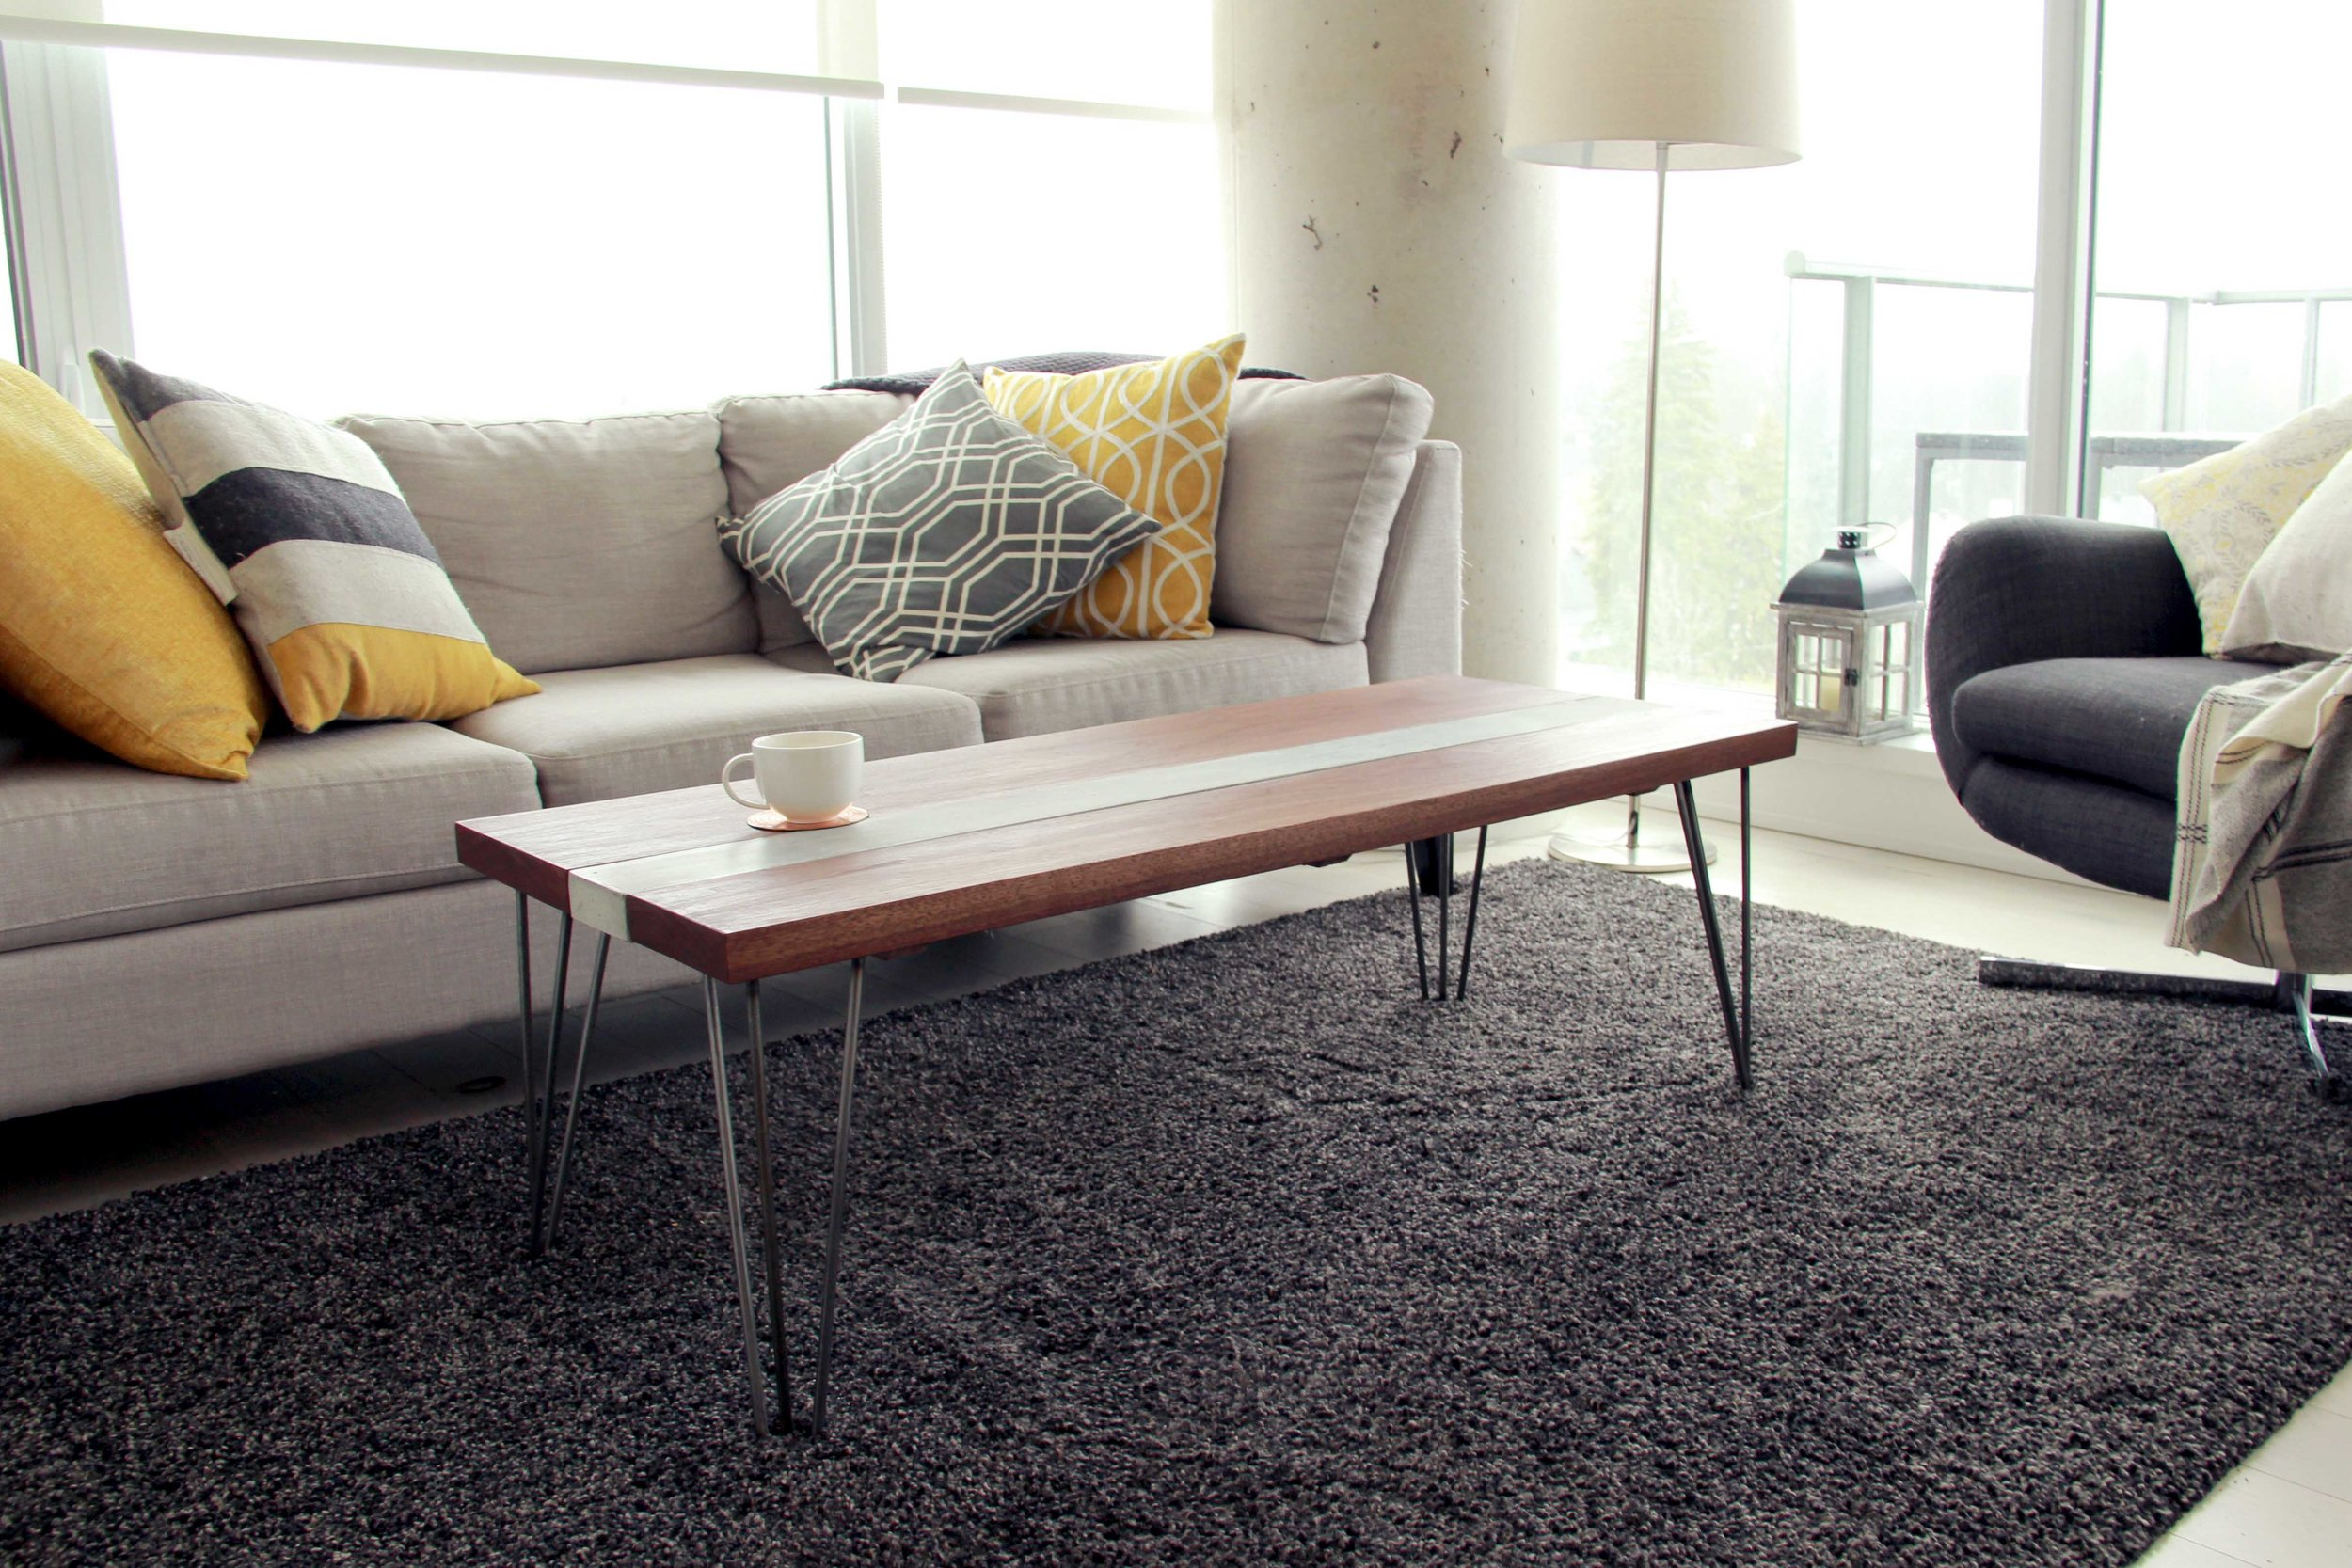 Riverview Design Solutions - Concrete Walnut Table - Industrial Modern Furniture - Loft.jpg